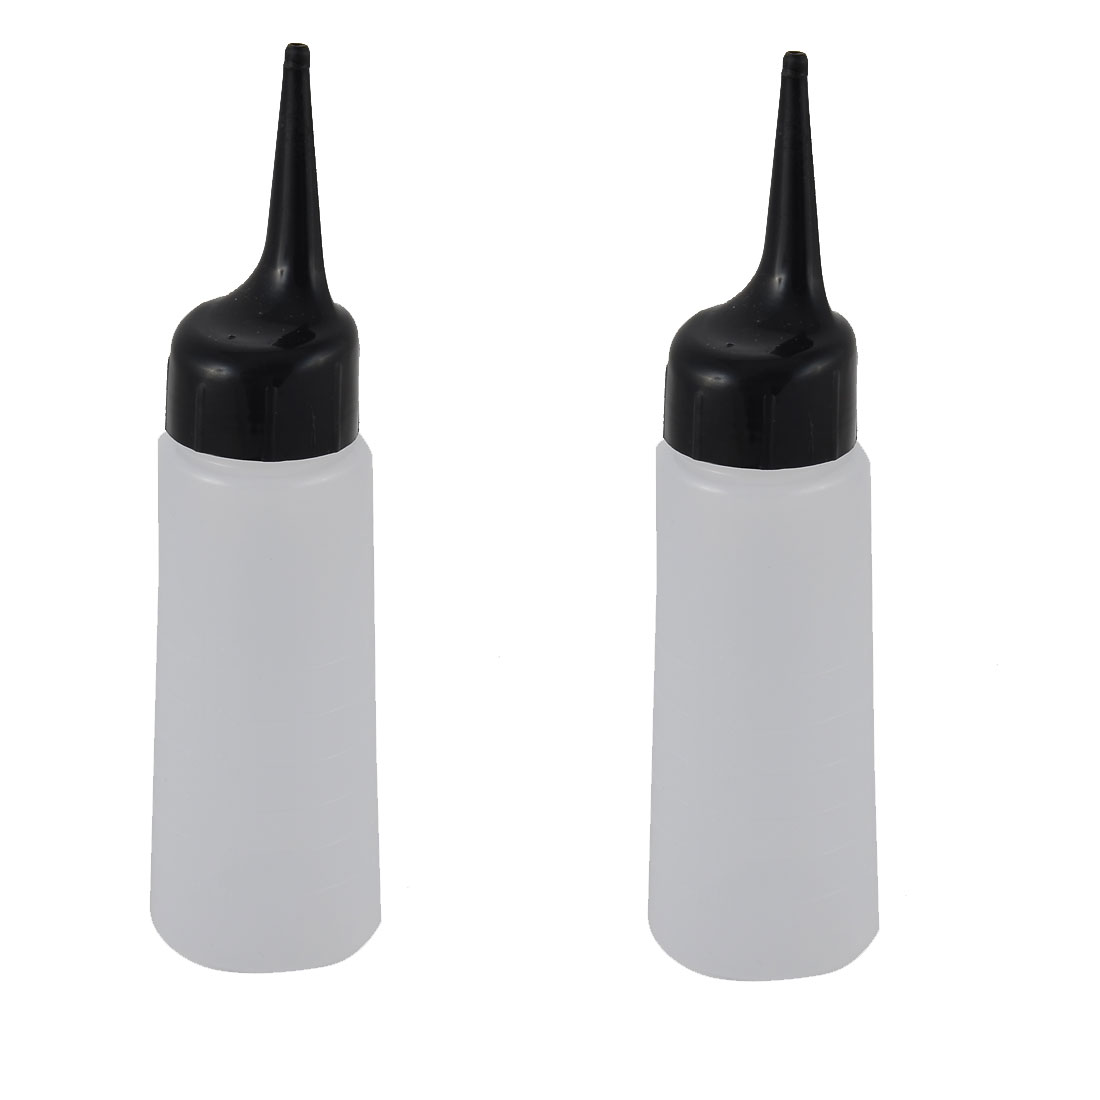 Household Plastic Hair Wash Shampoo Squeeze Bottle Container Black White 2 Pcs